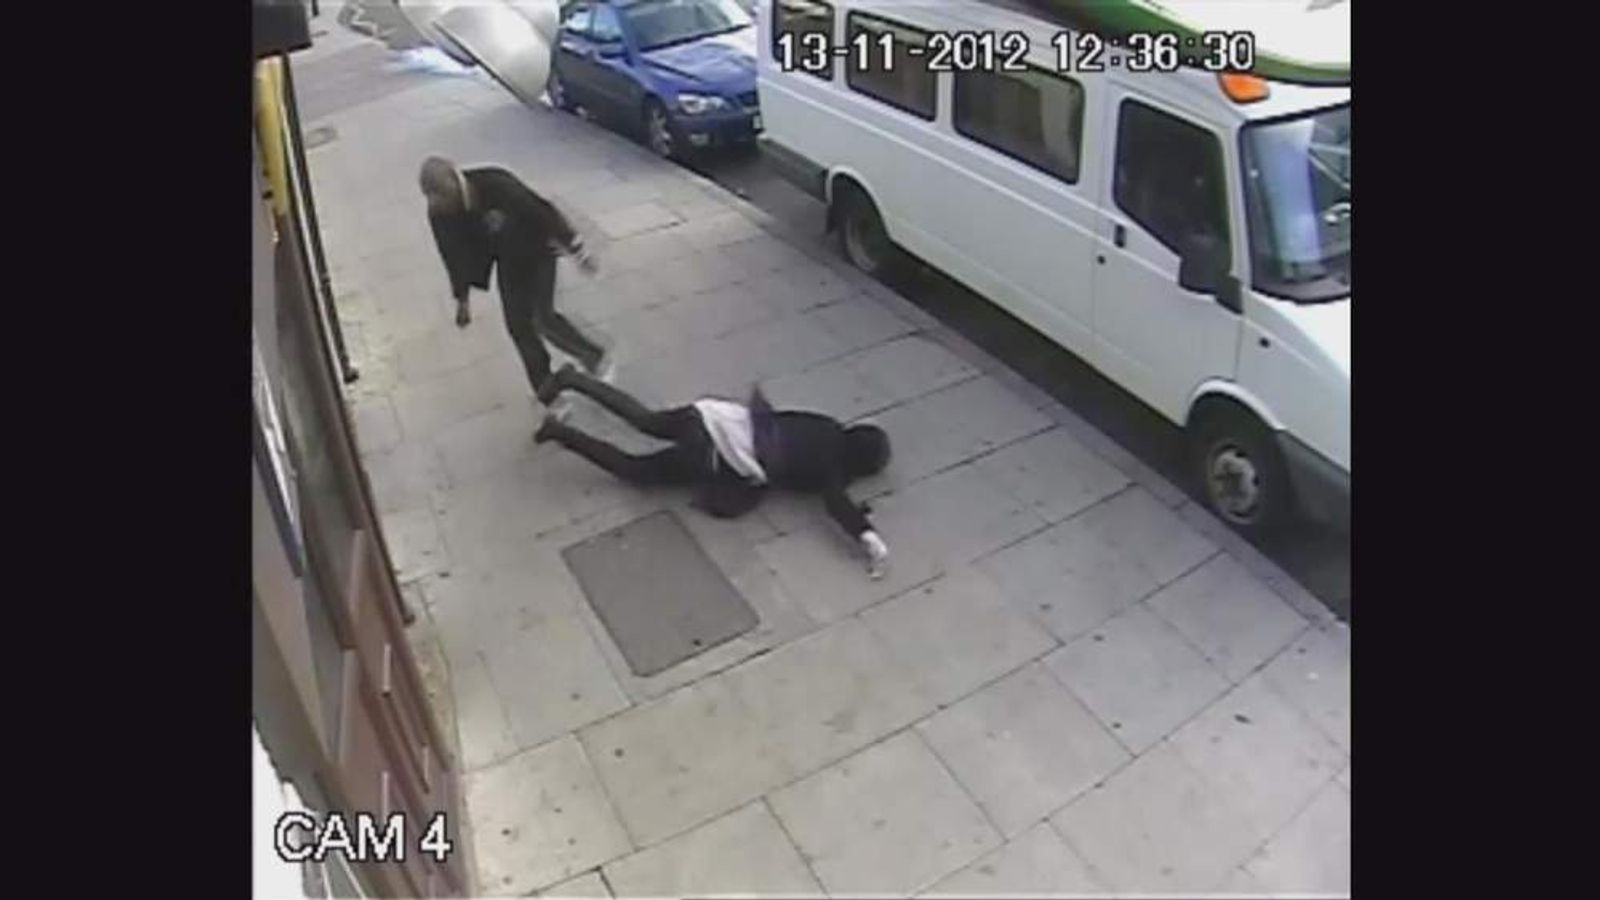 The woman is knocked to the ground by her attacker